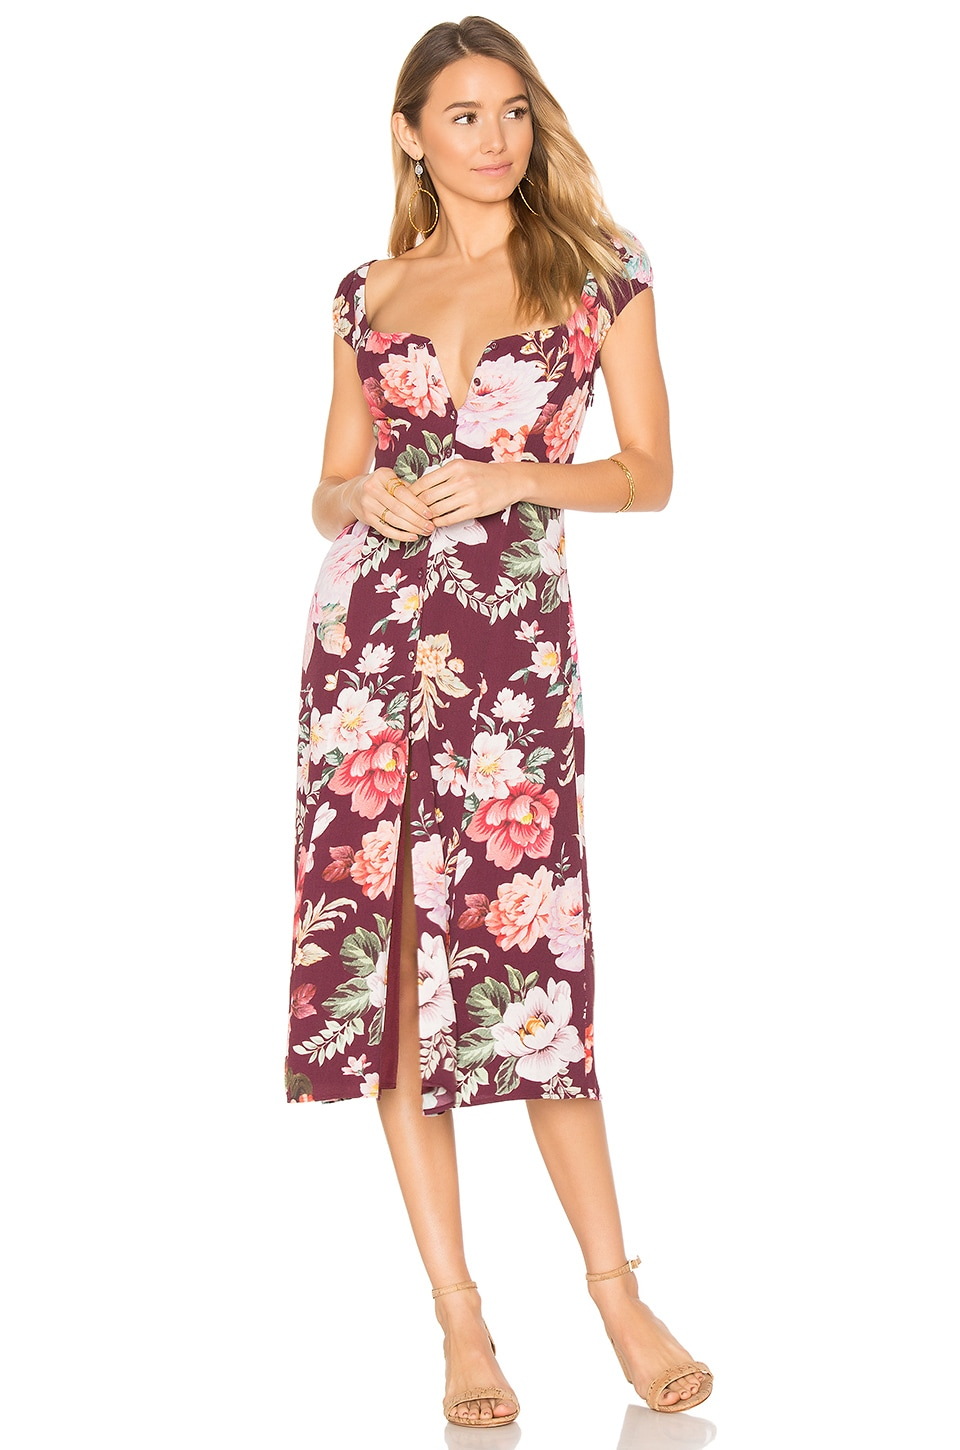 MAJORELLE Willow Midi Dress in Karolina Print